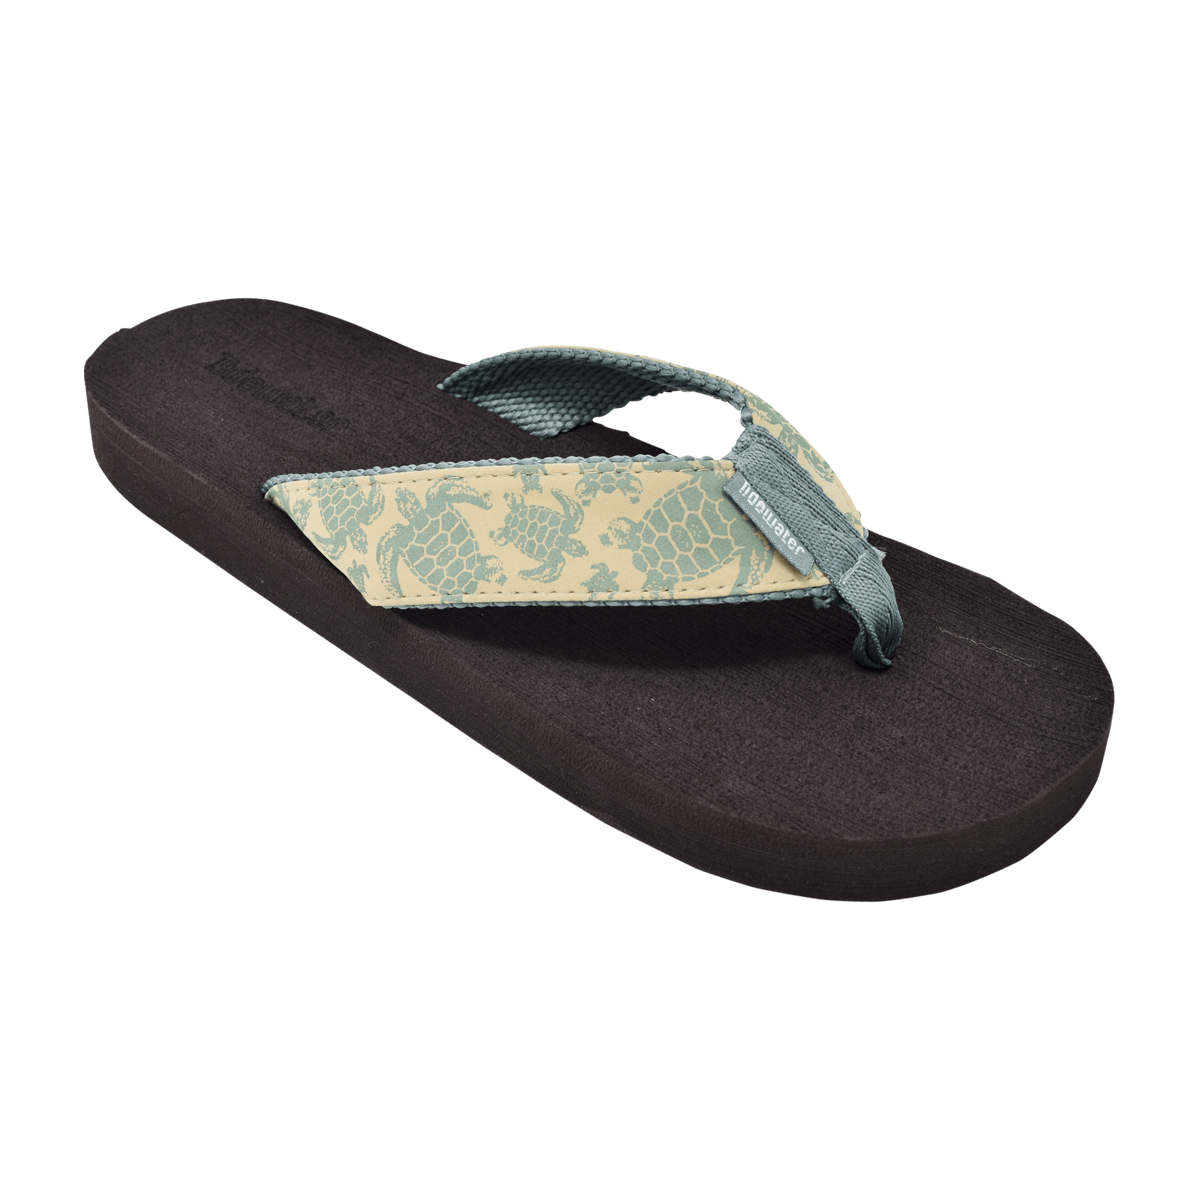 Natural Turtle - Tidewater Sandals | Voted Most Comfortable Flip Flops